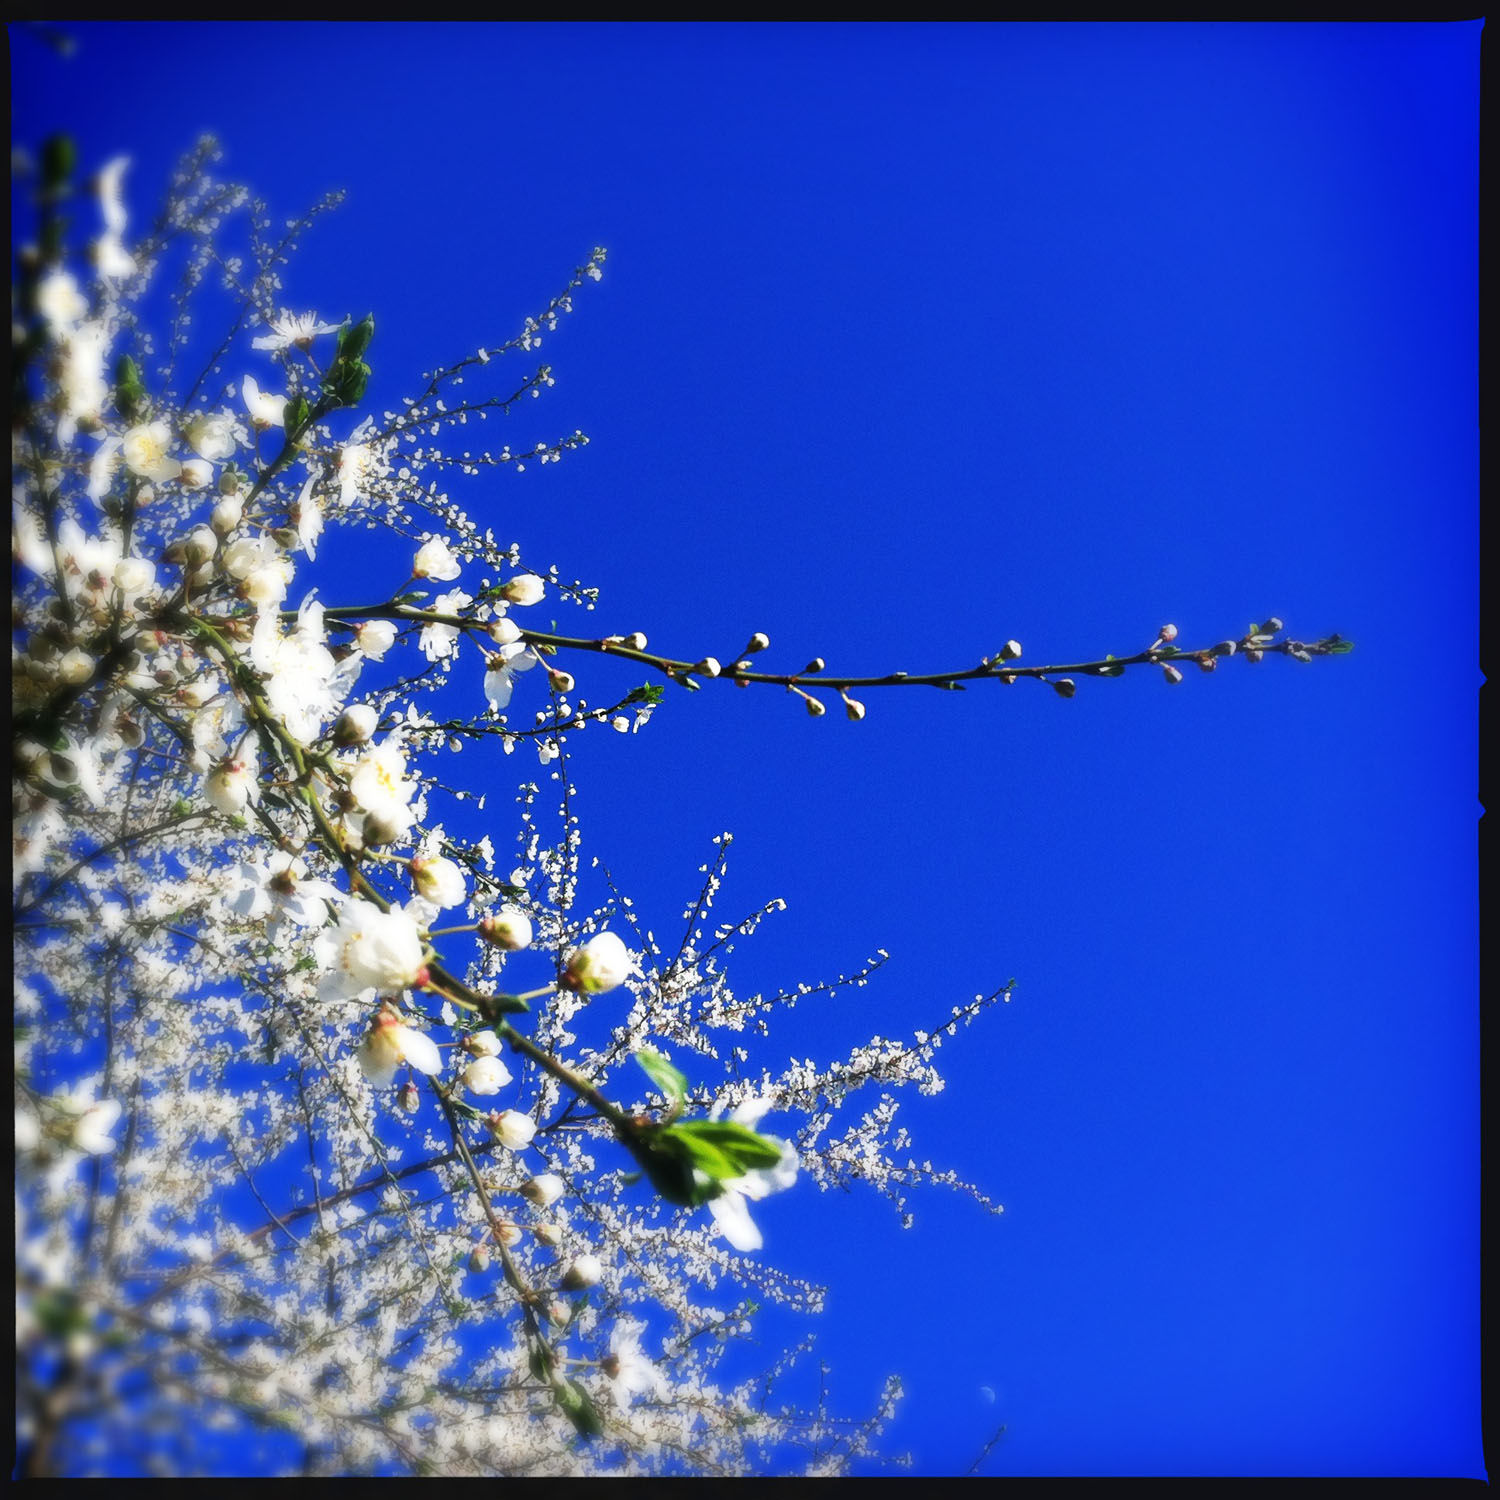 mobile photography: spring blossoms